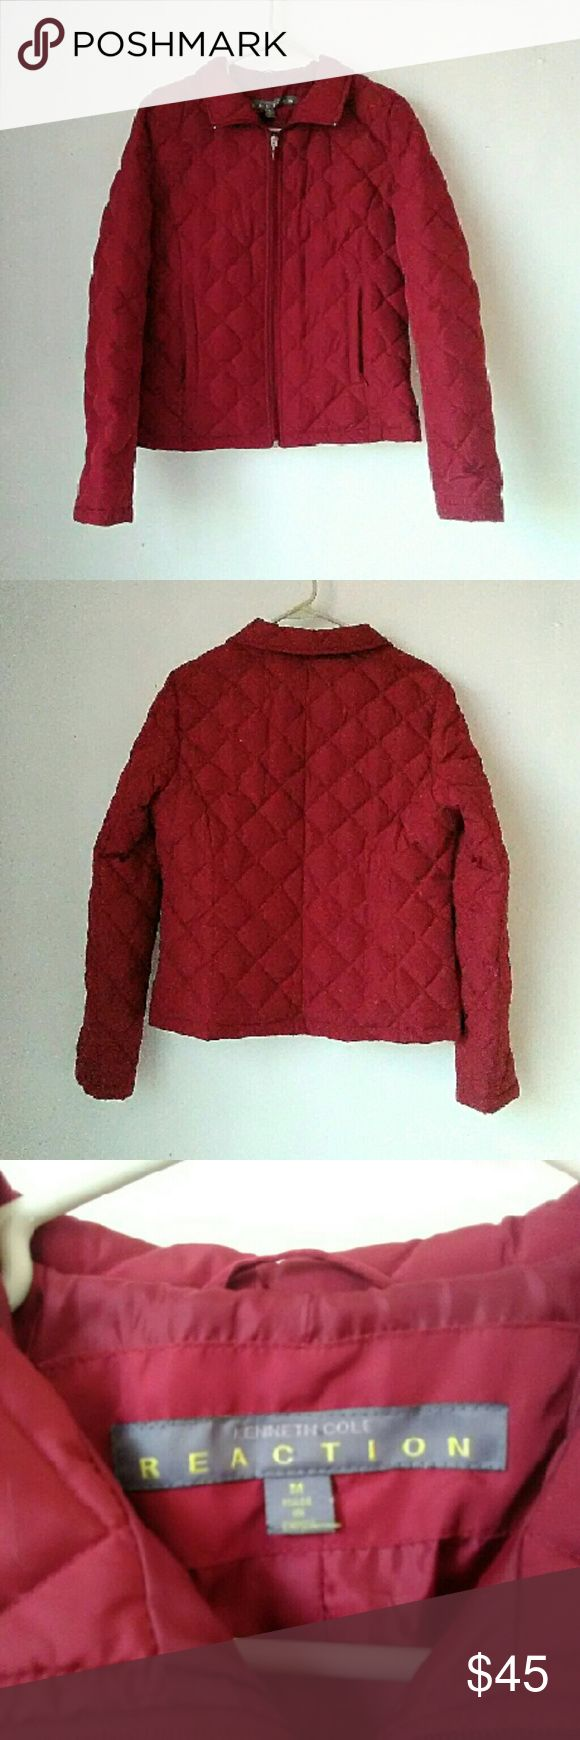 Kenneth Cole Red Quilted Jacket Zip front jacket with zipper front and warm lining. Shell and lining are poly. Filler is Down Clusters and Waterfowl Feathers. Excellent like new condition. Offers are welcome! Kenneth Cole Reaction Jackets & Coats